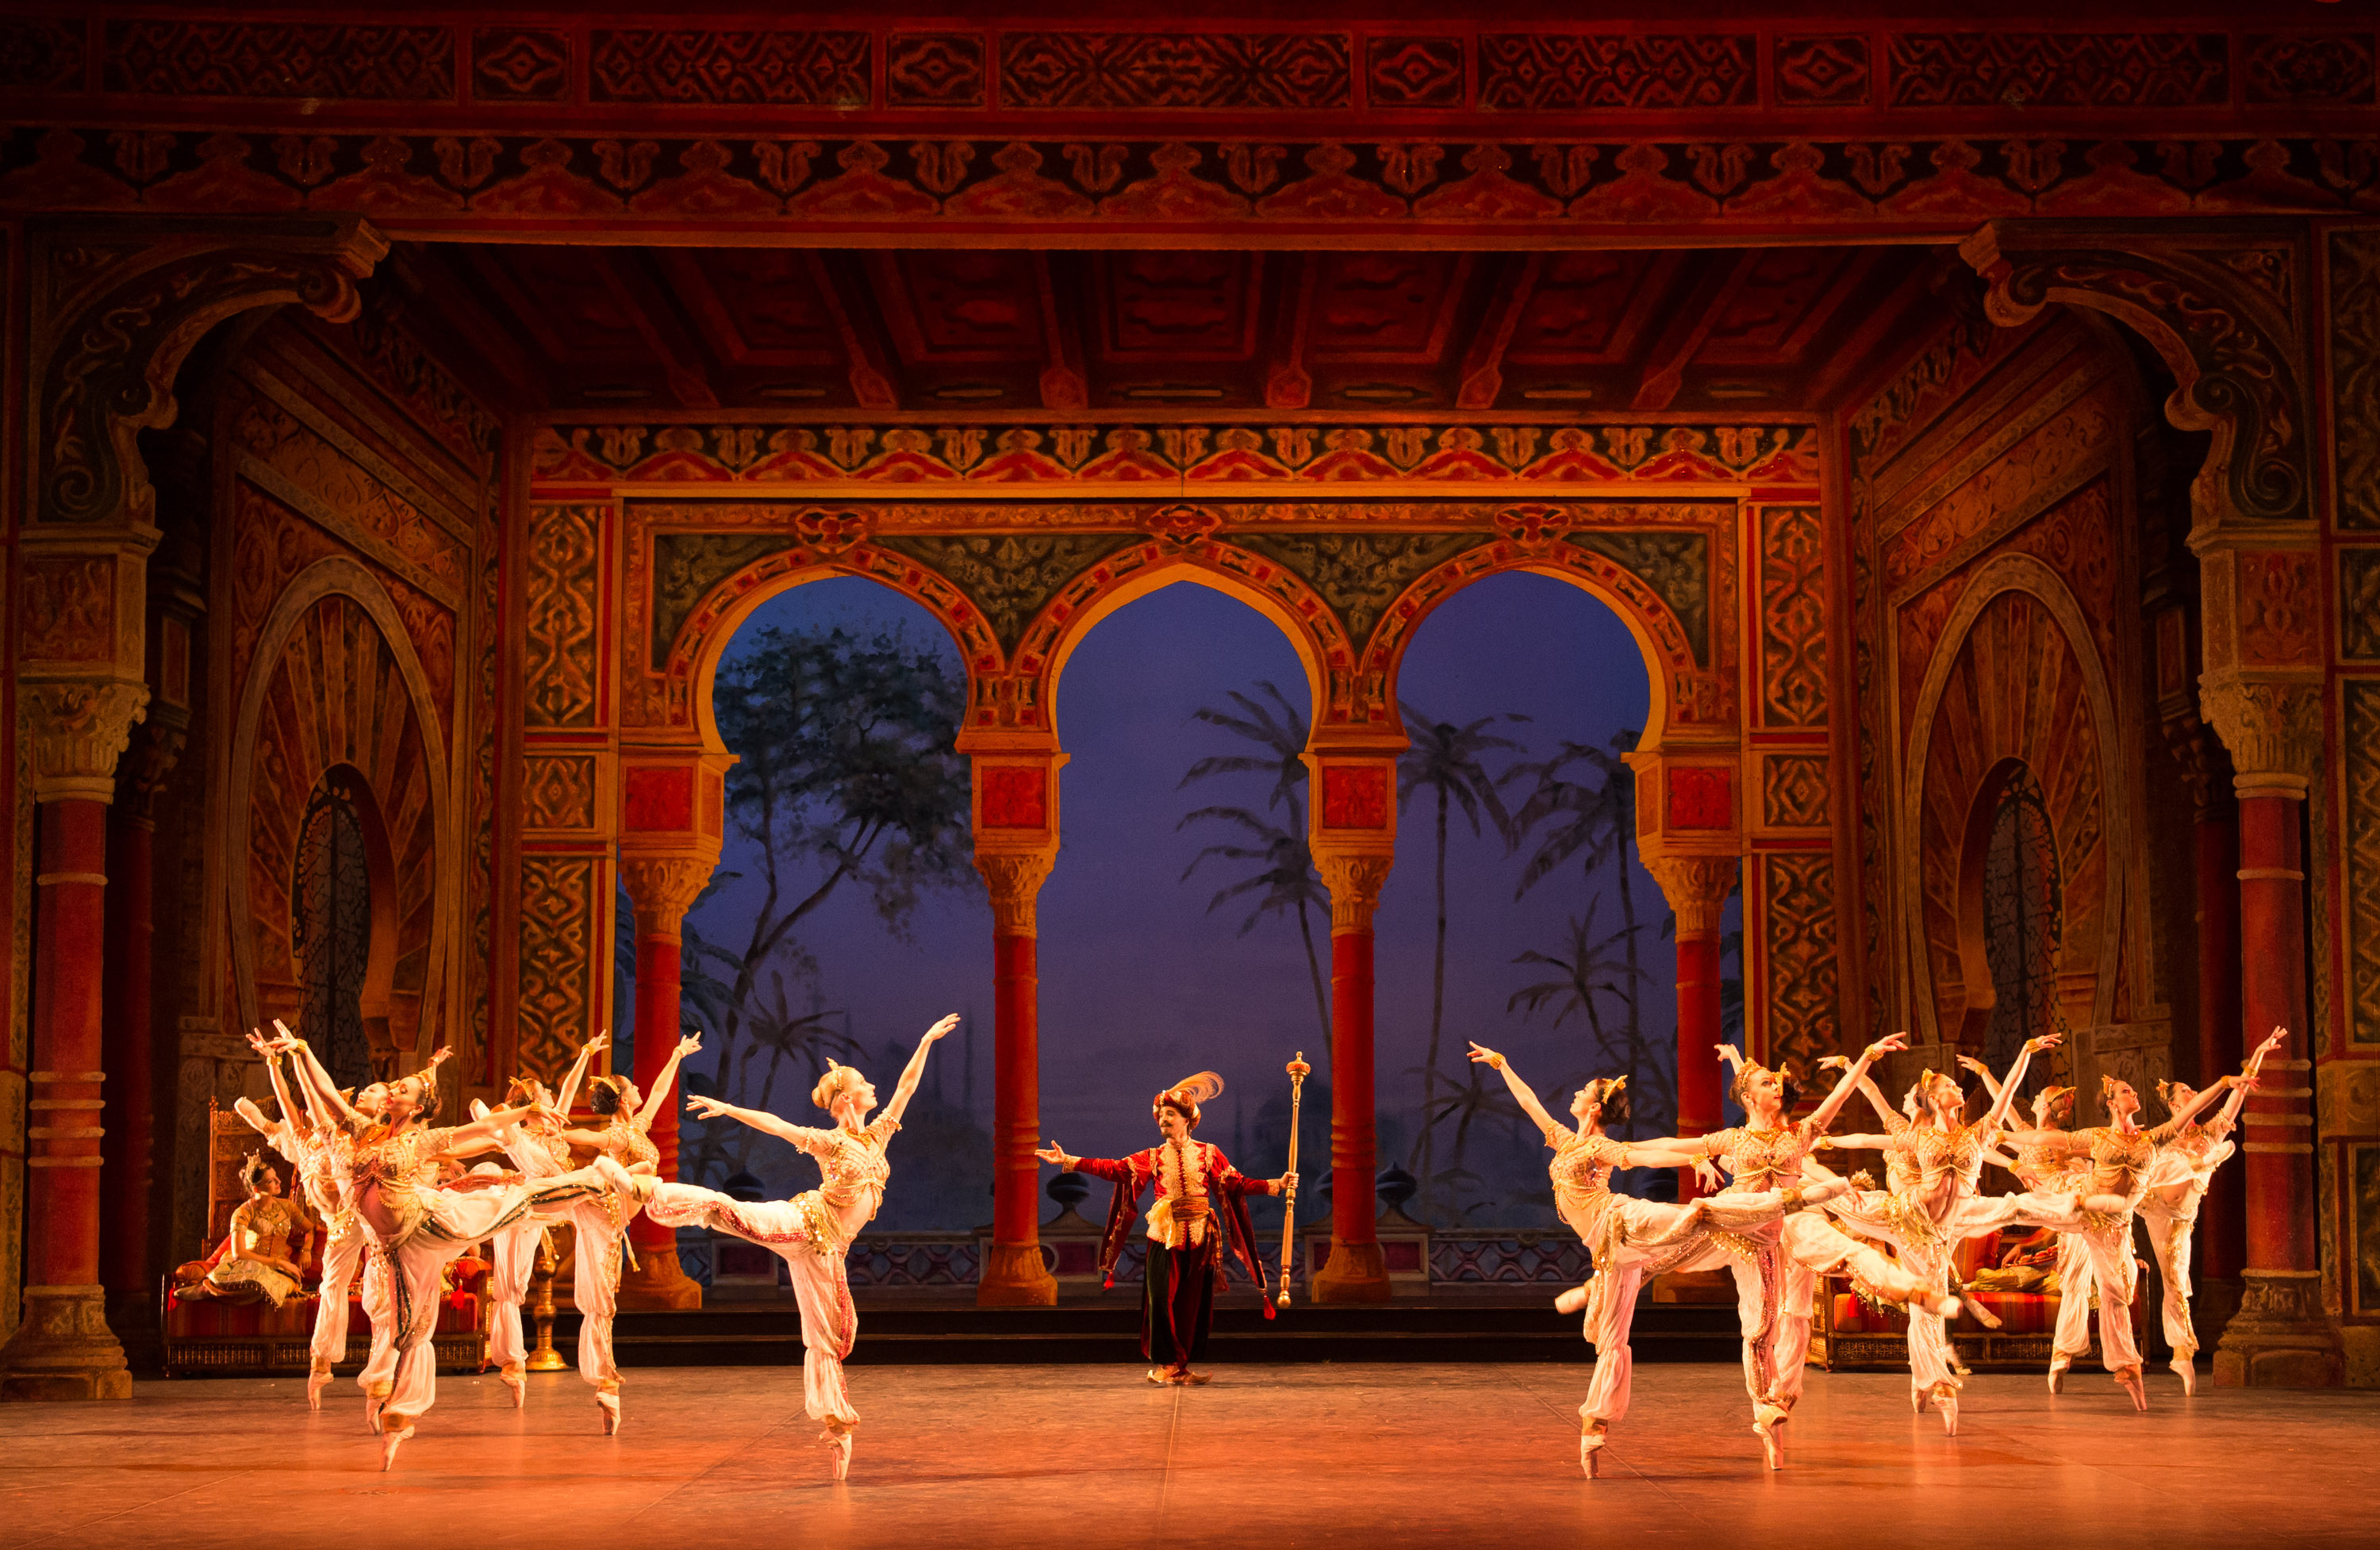 English National Ballet dancers performing the world premiere of Le Corsaire.